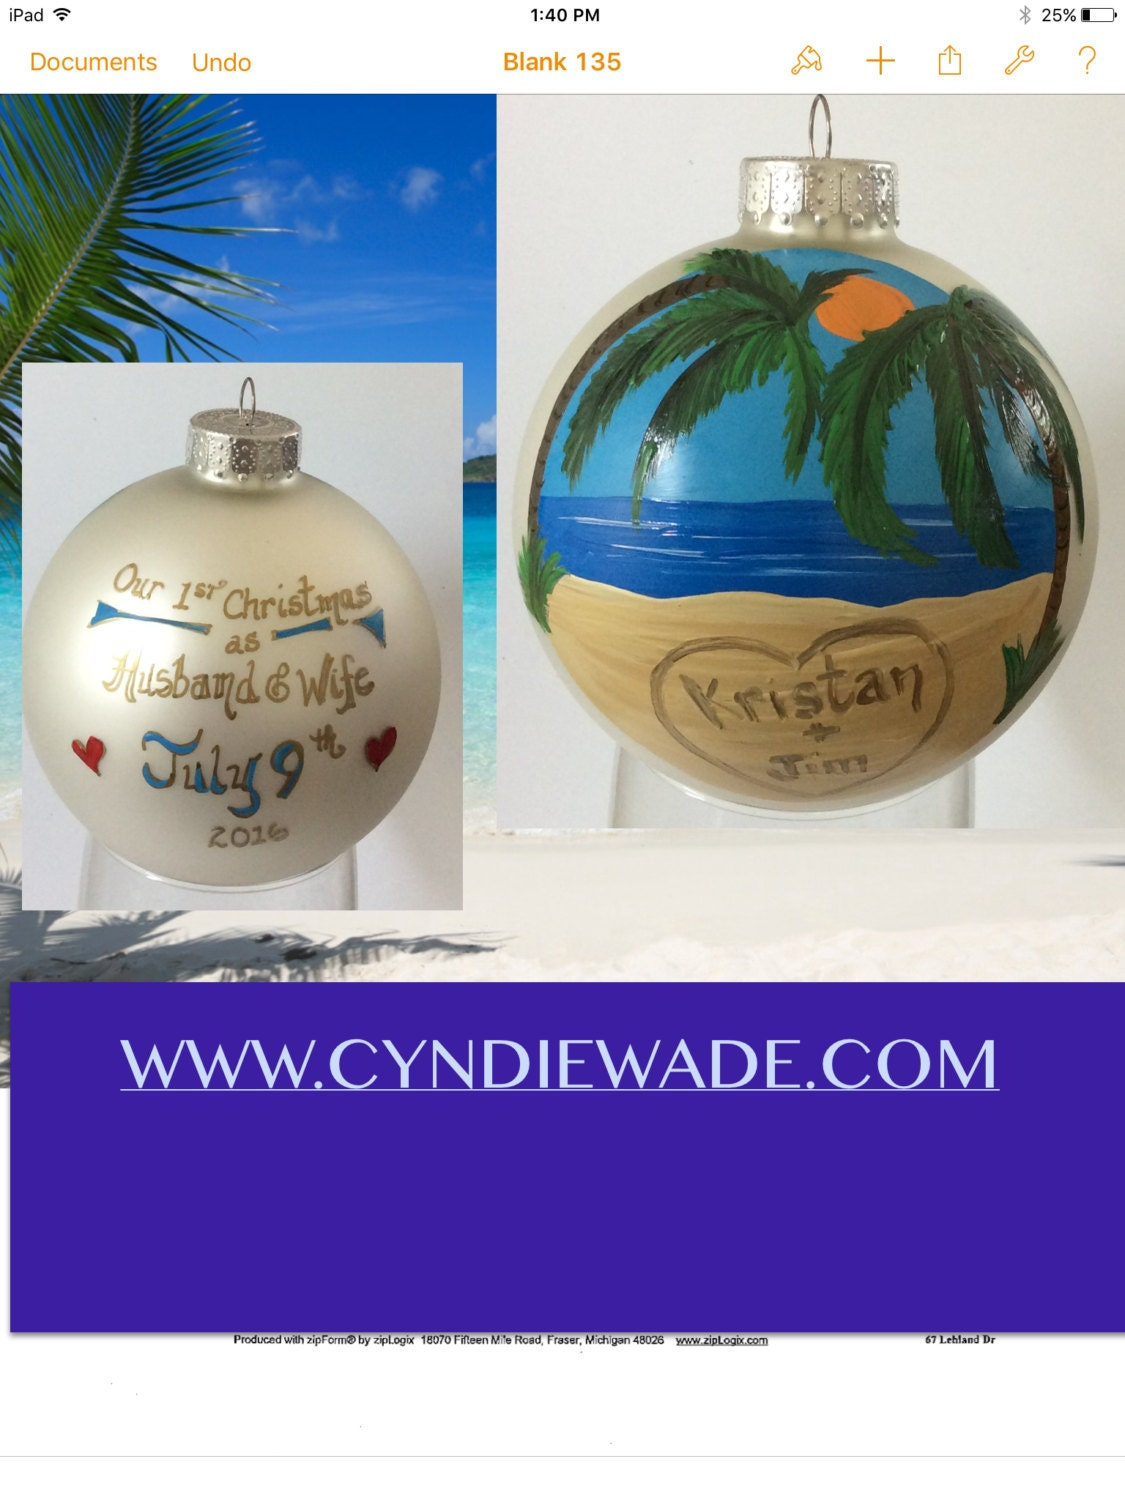 Blank ornaments to personalize - Sold By Handpaintedbycyndie